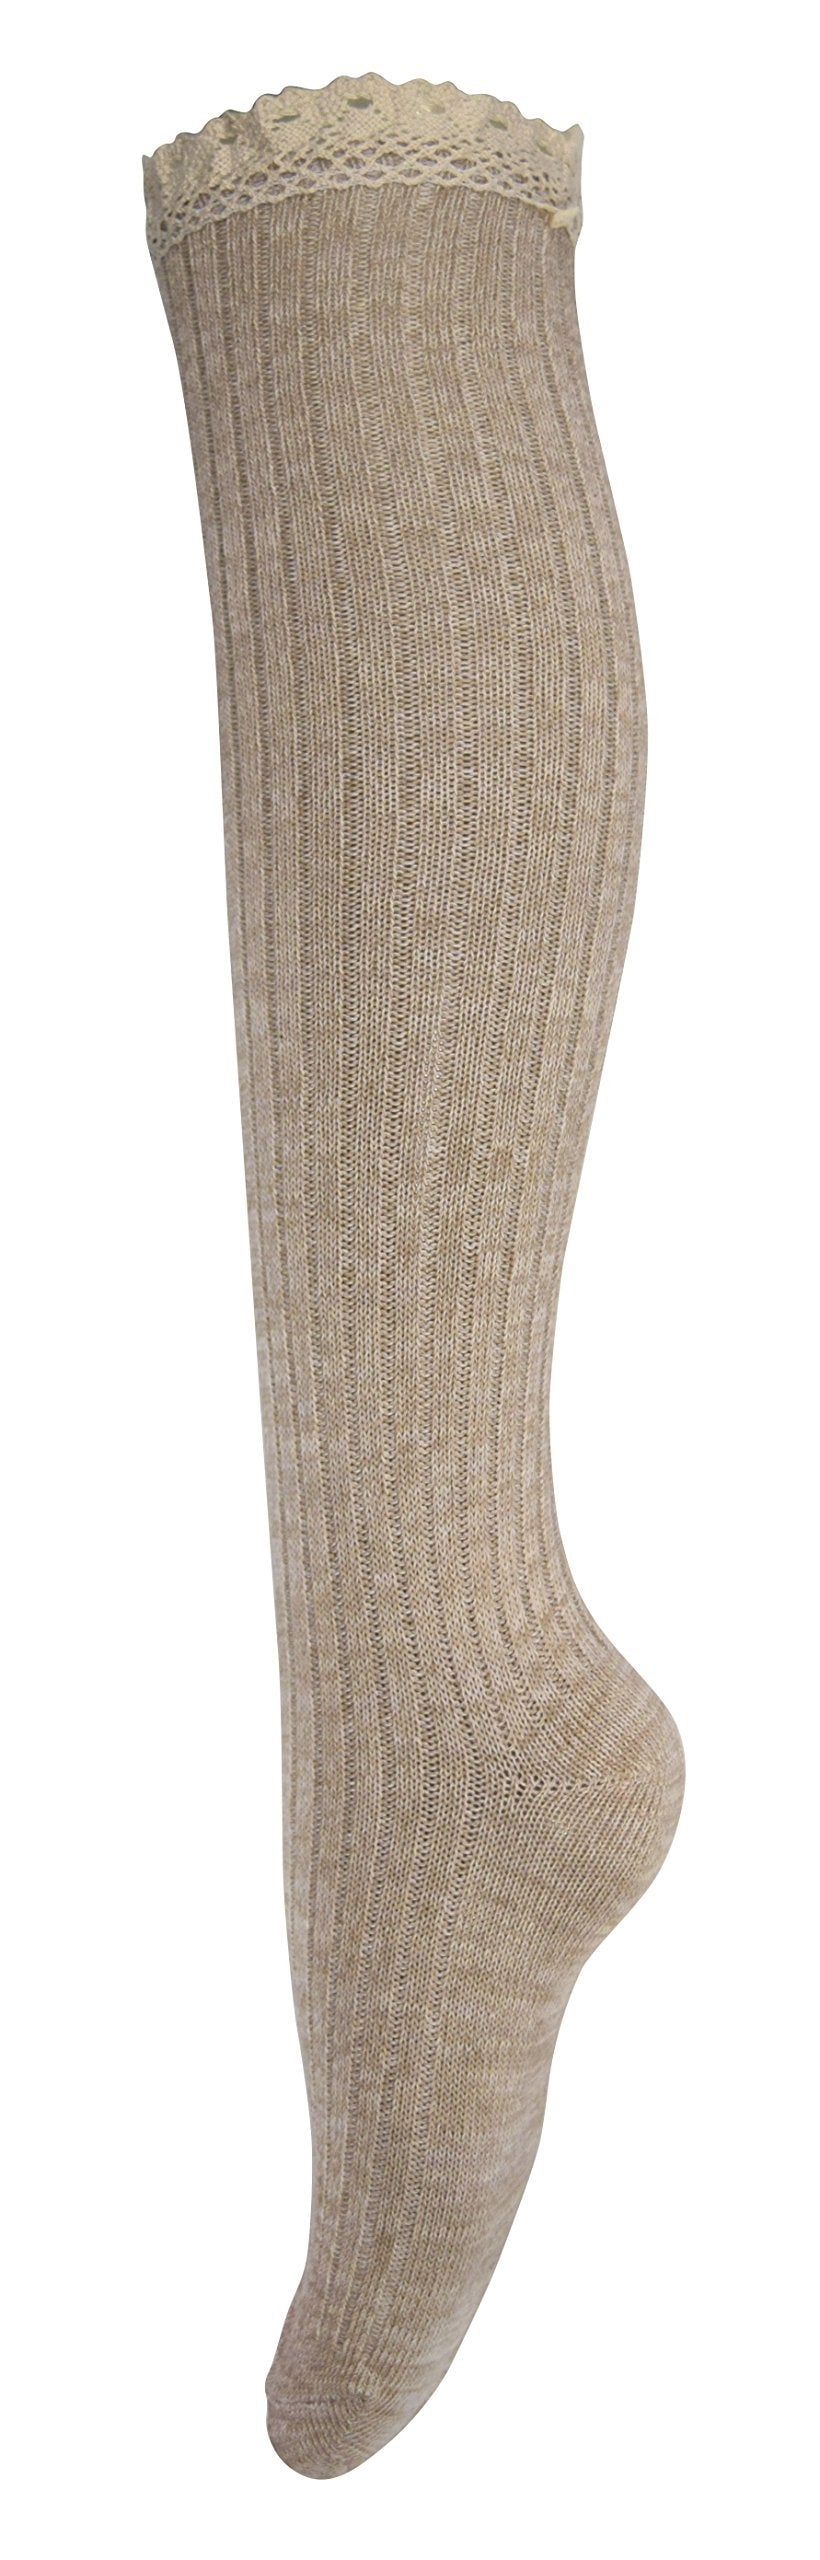 Lace Trimmed Warm Stylish Cotton Knit Knee High